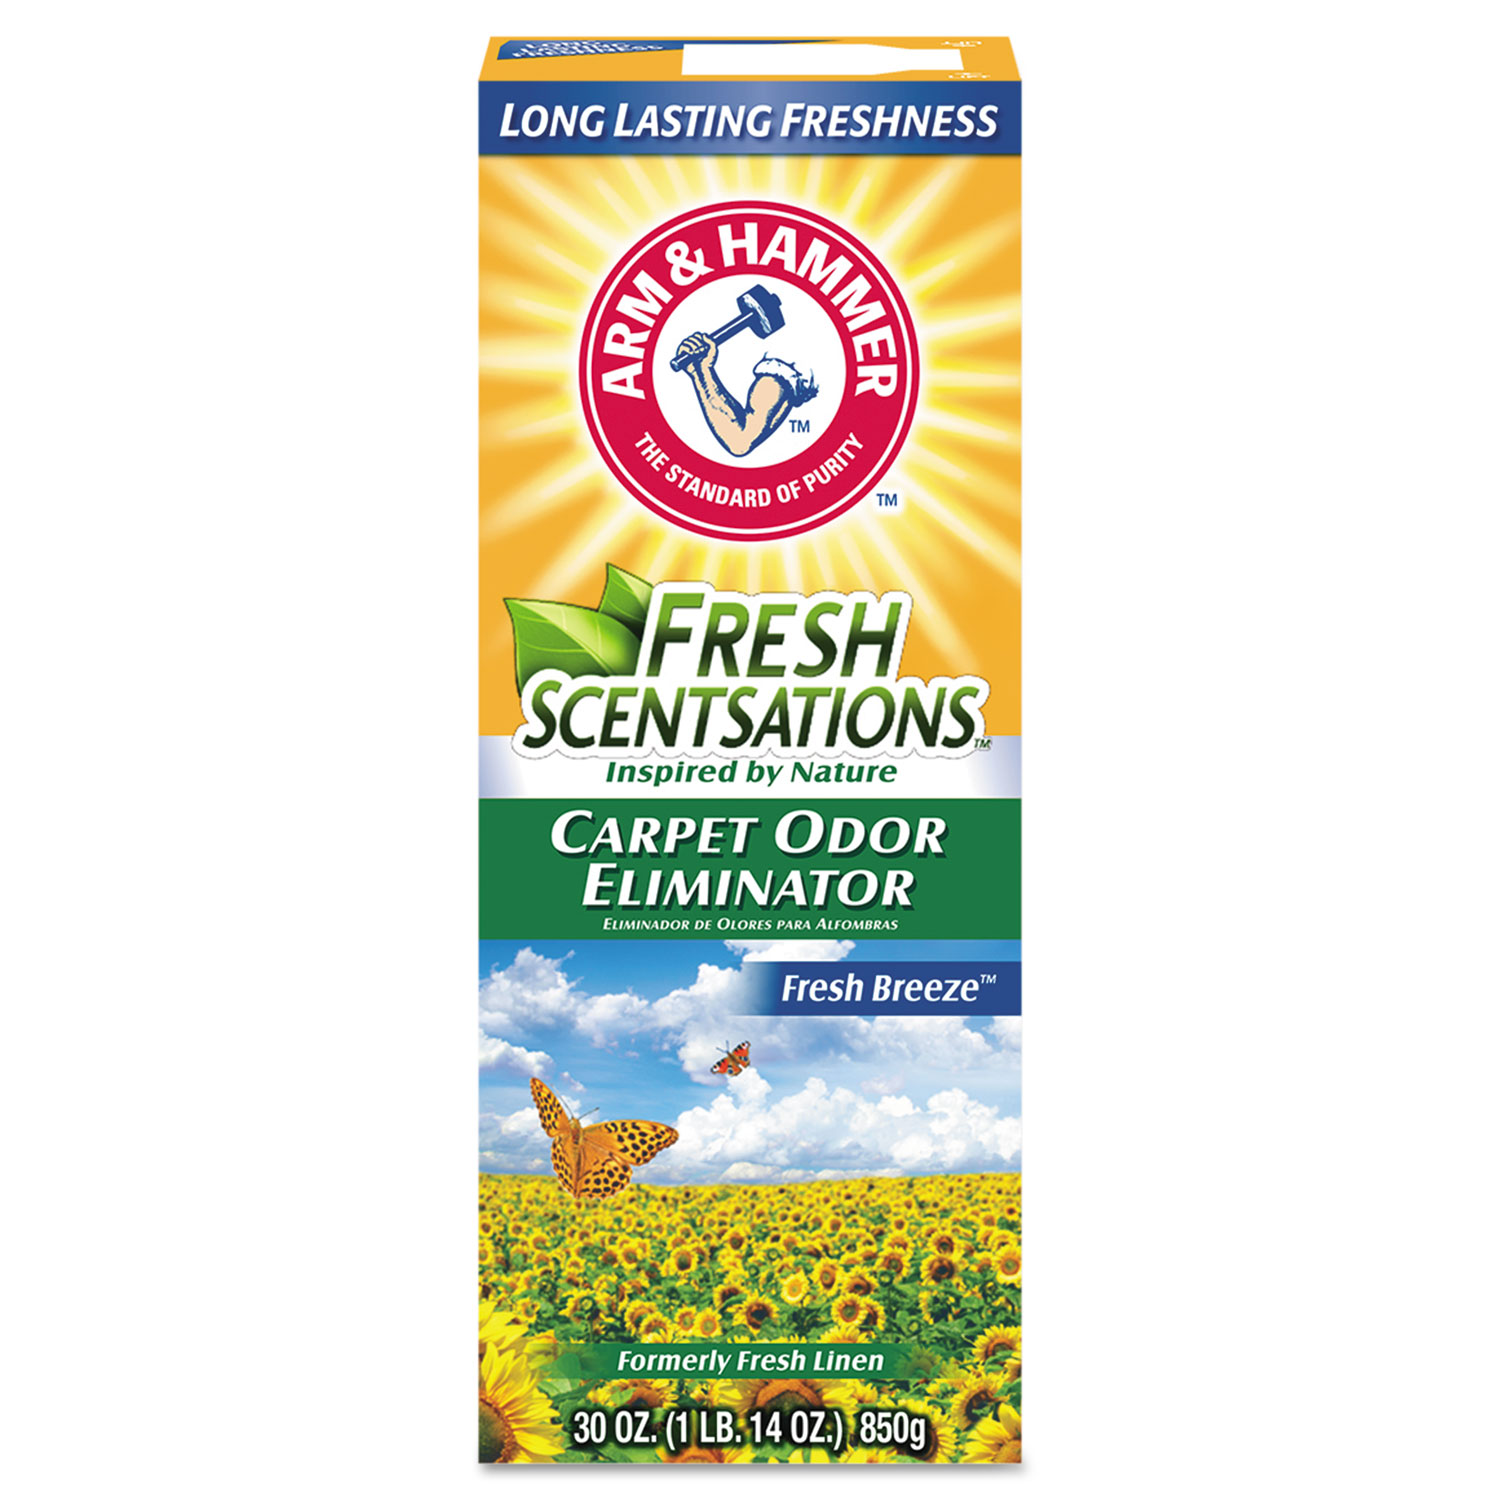 Fresh Scentsations Carpet Odor Eliminator, Fresh Breeze, 30 oz Box, 6/Carton